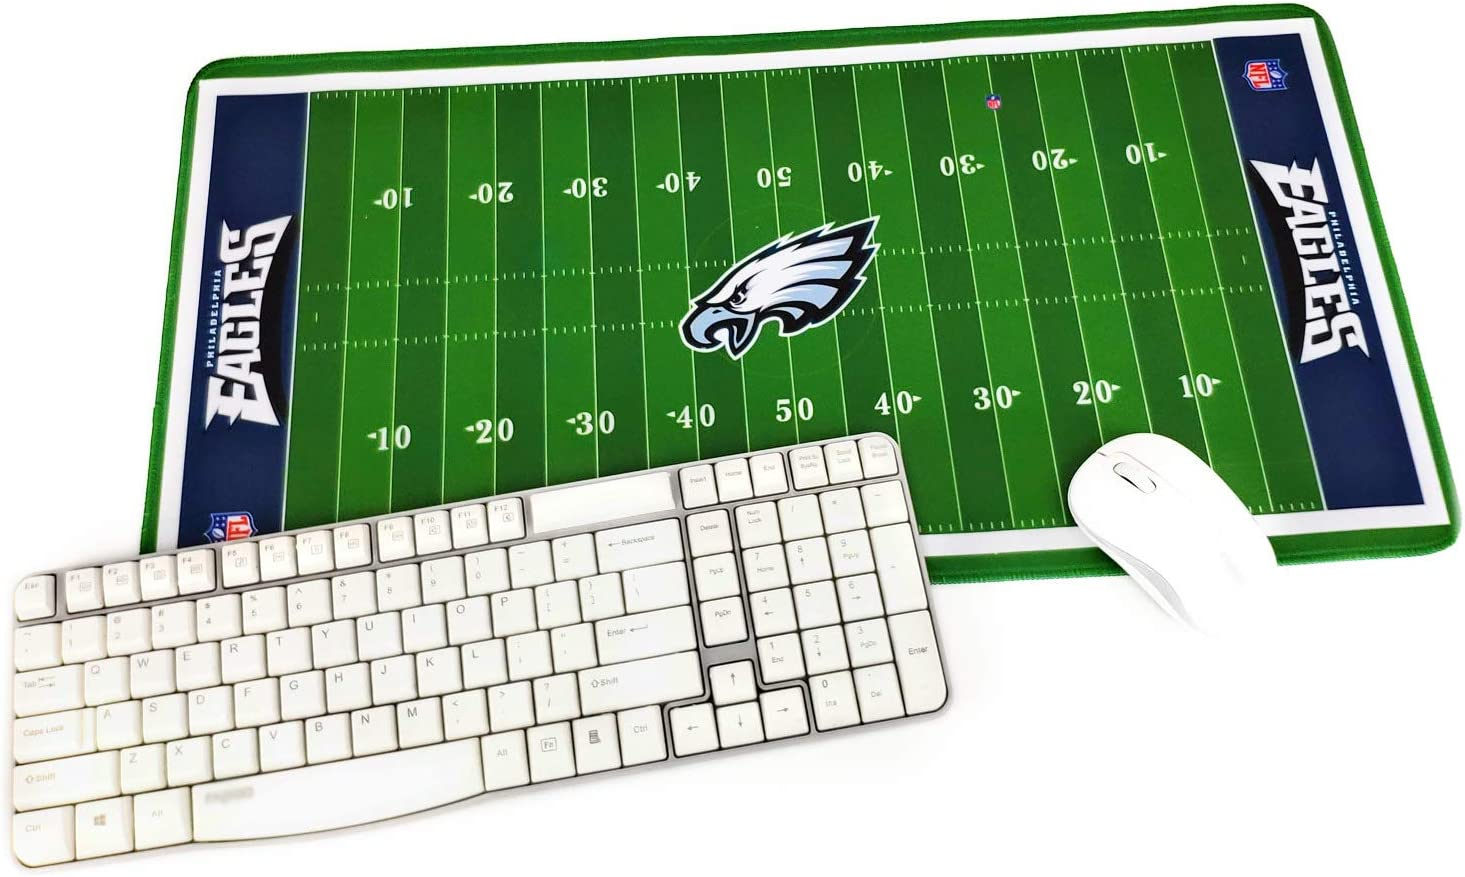 "TRIPRO Football Field Design Large Gaming Mouse Pad XXL Extended Mat Desk Pad Mousepad,Size 23.6""x11.8"",Water-Resistant,Non-Slip Base,for Eagles Fans Gifts"